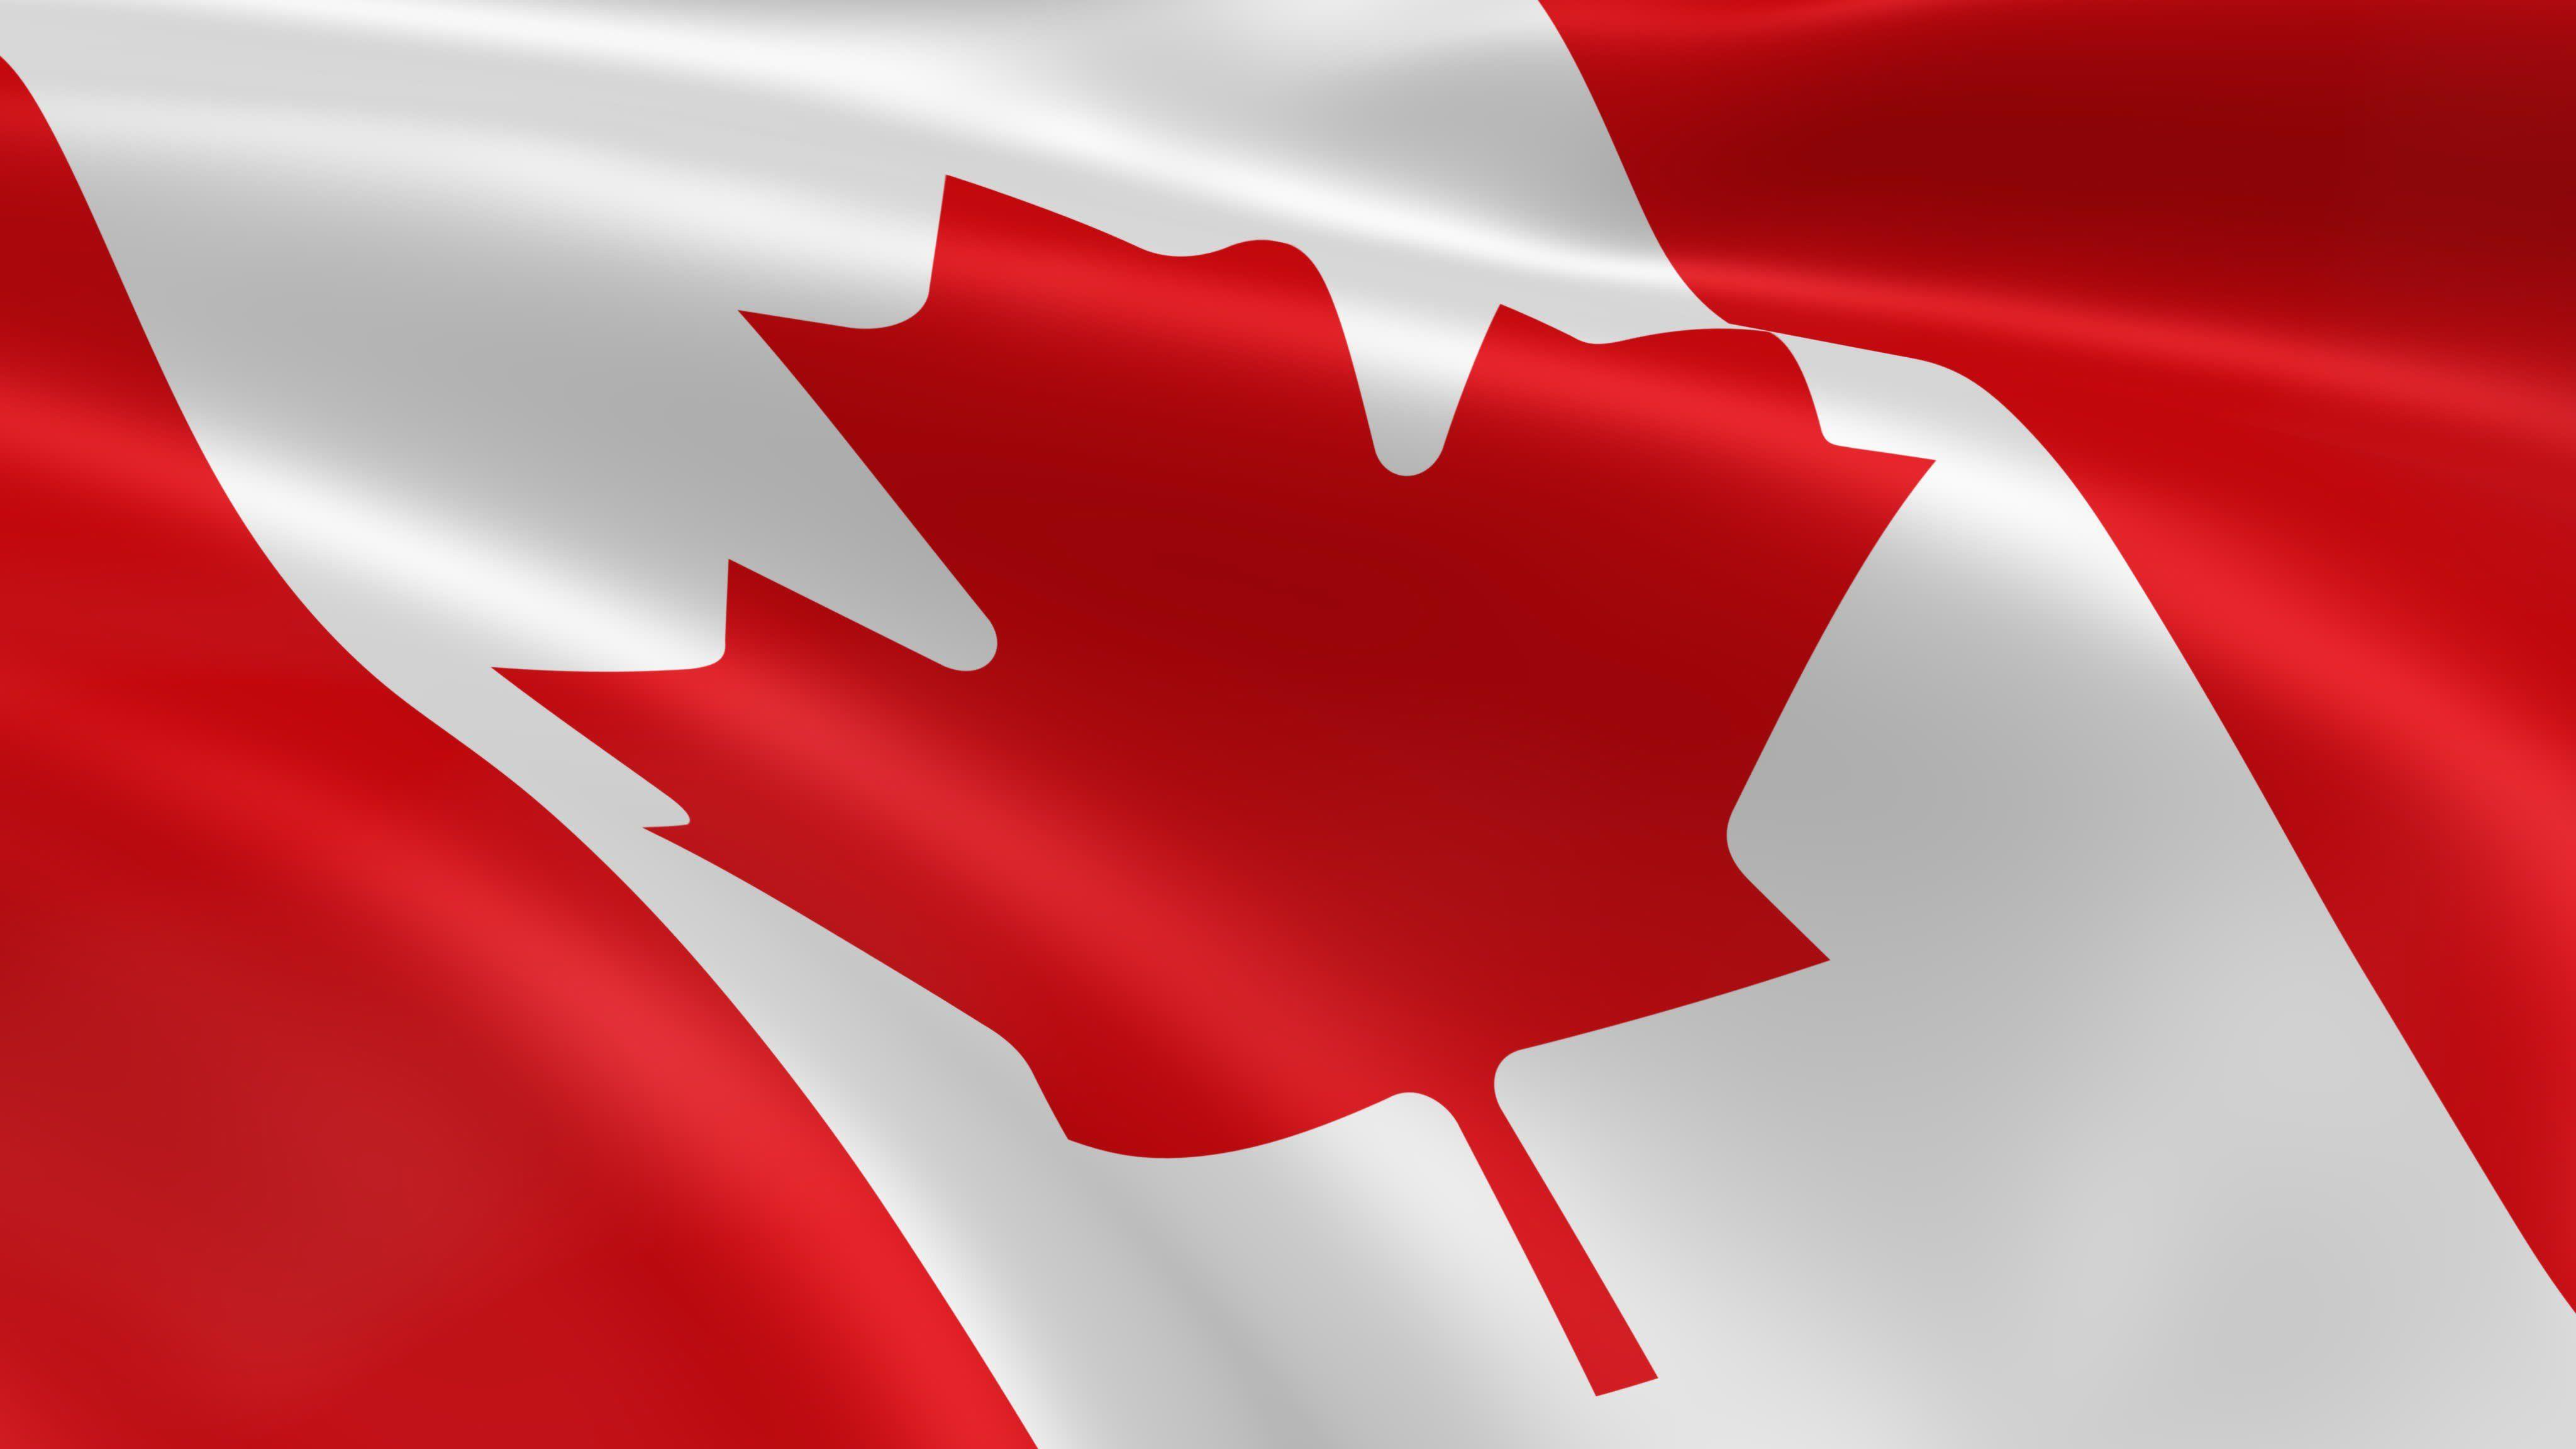 Canada Flag Wallpaper 1